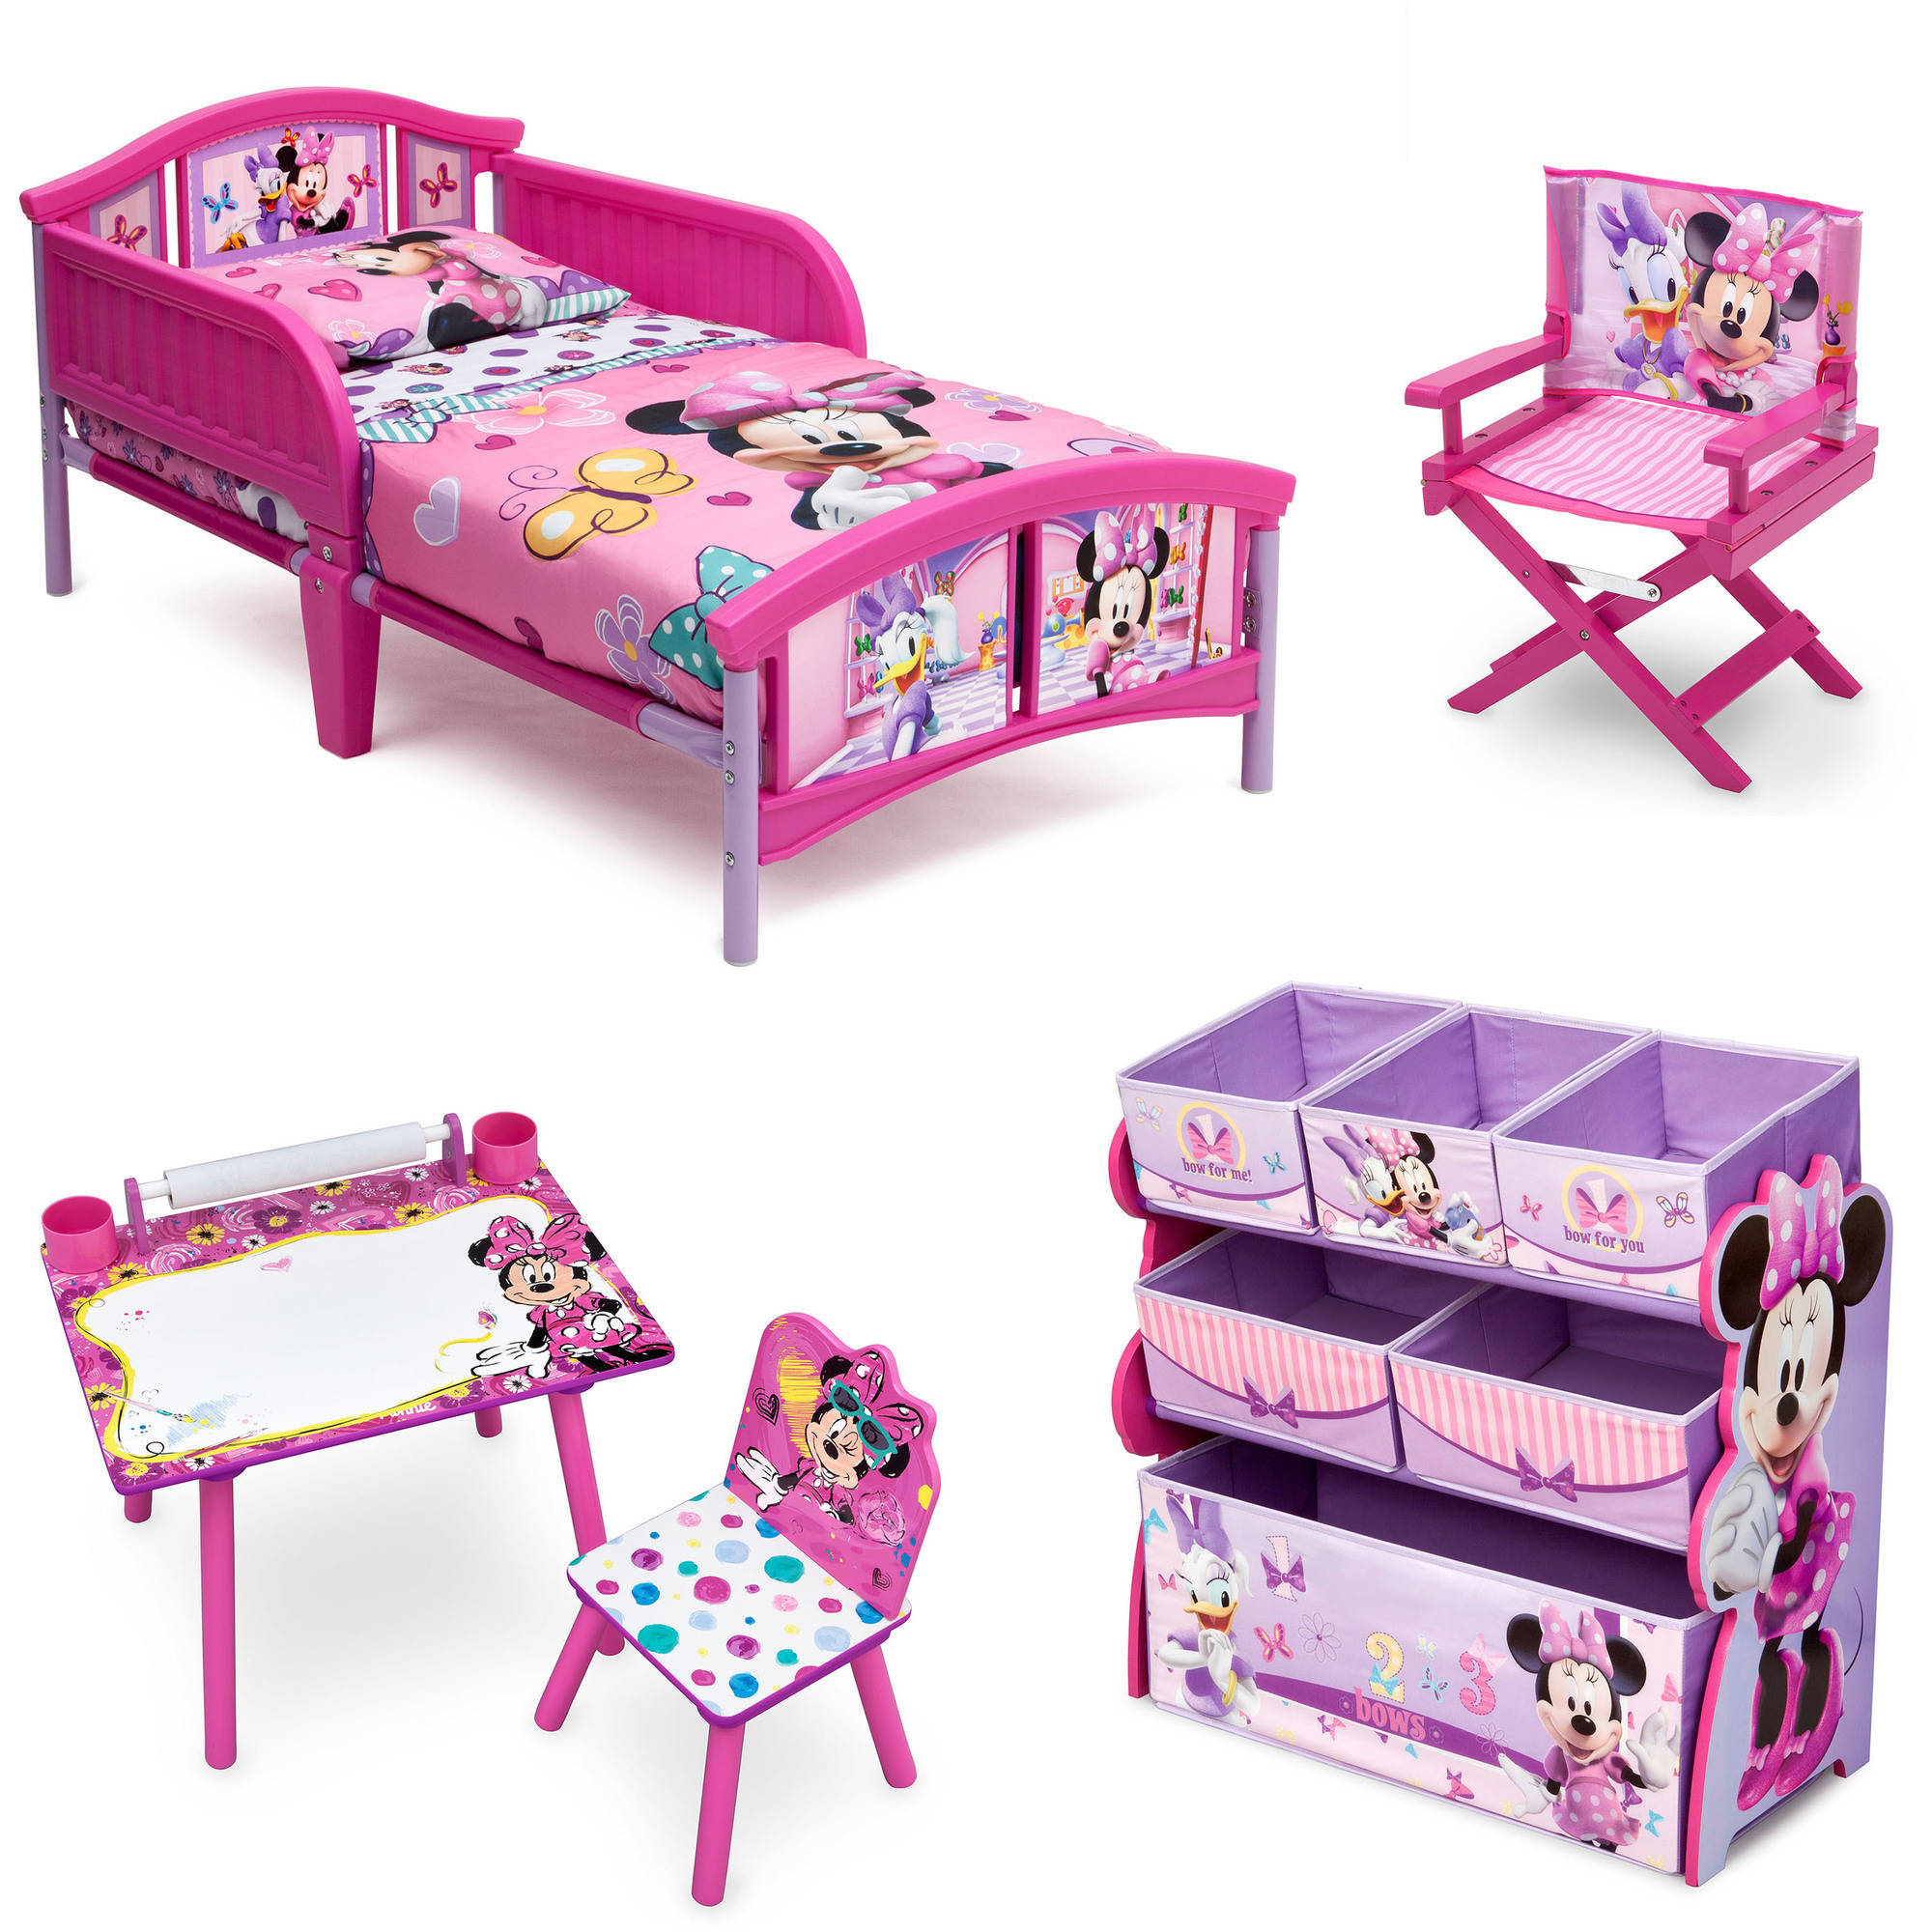 childrens bedroom sets walmart cheaper than retail price buy clothing accessories and lifestyle products for women men